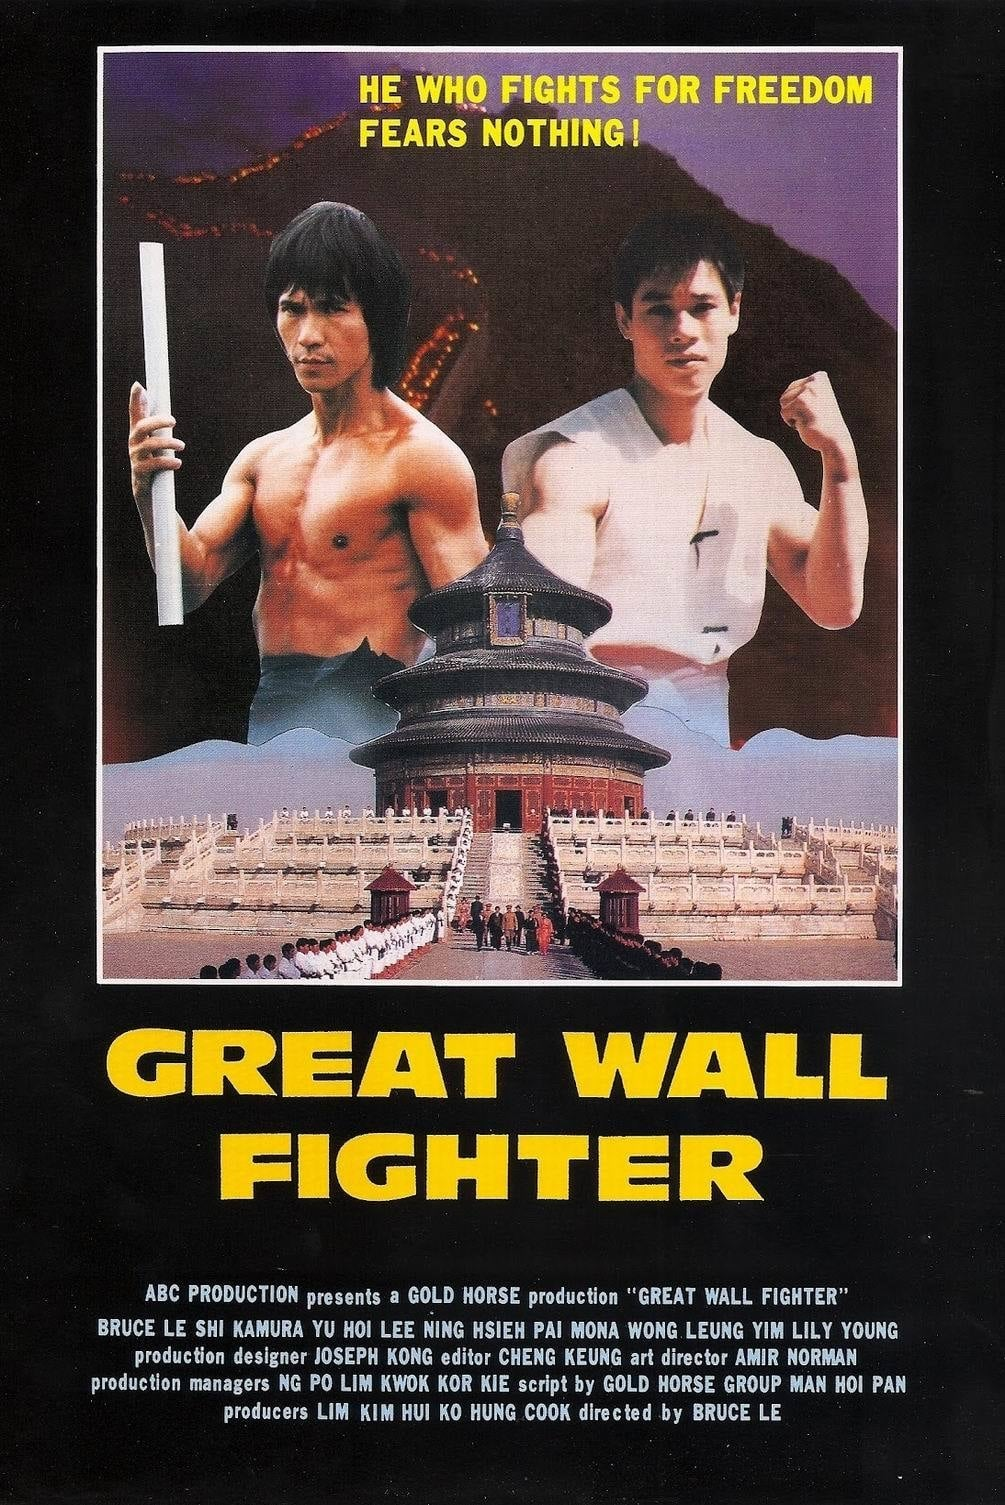 Fire on the Great Wall (1987)